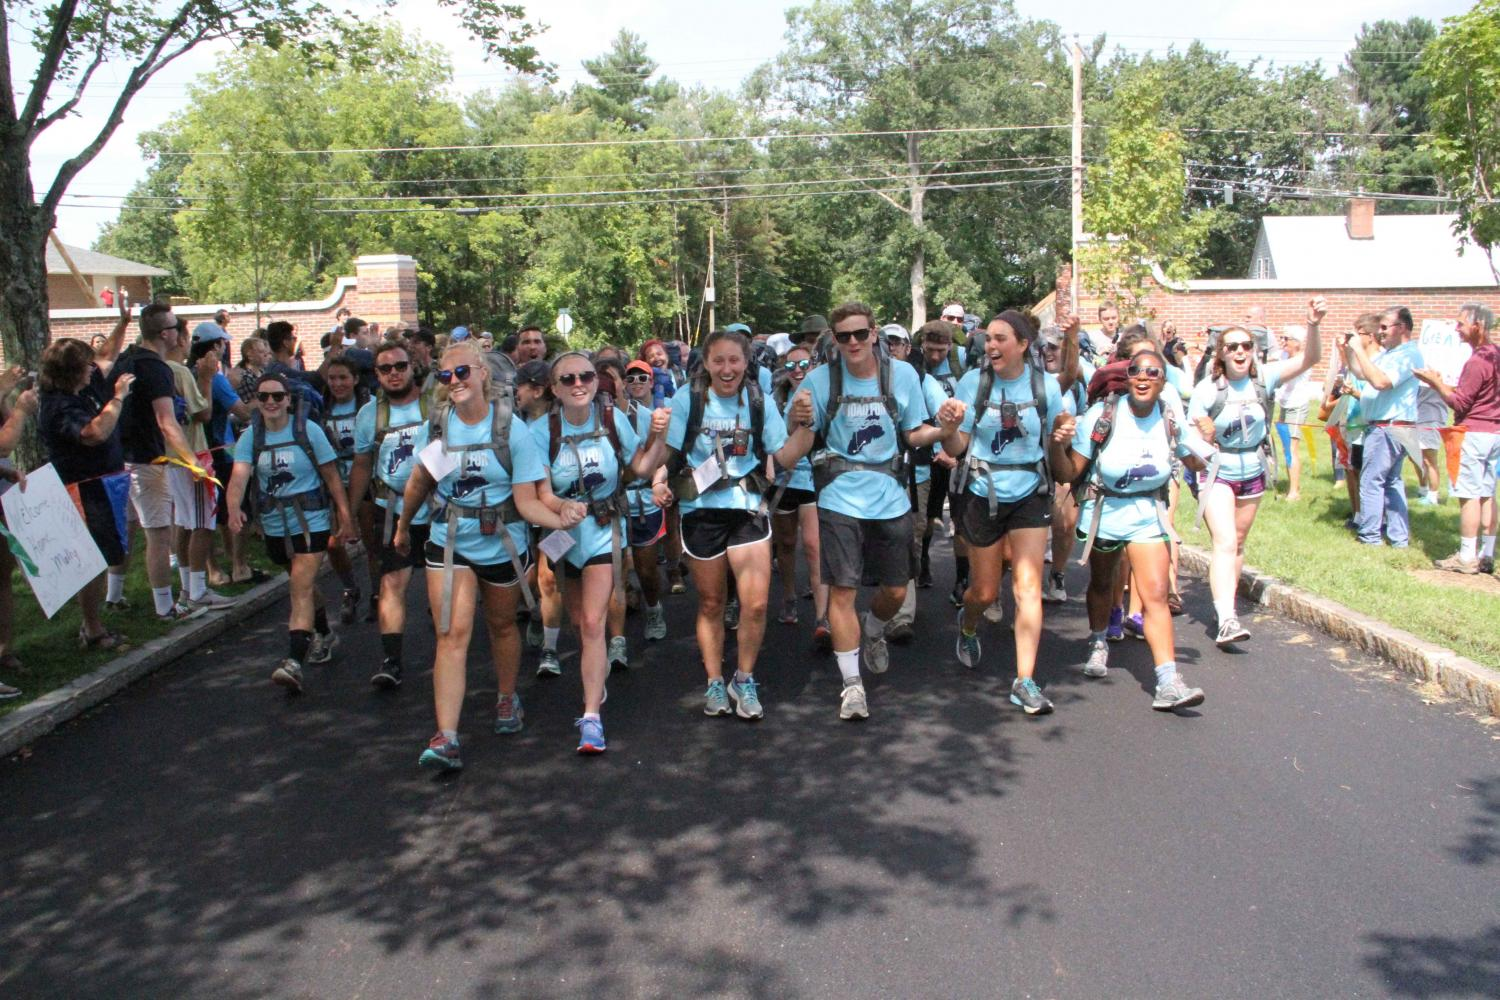 St. A's students unite to walk a road for hope